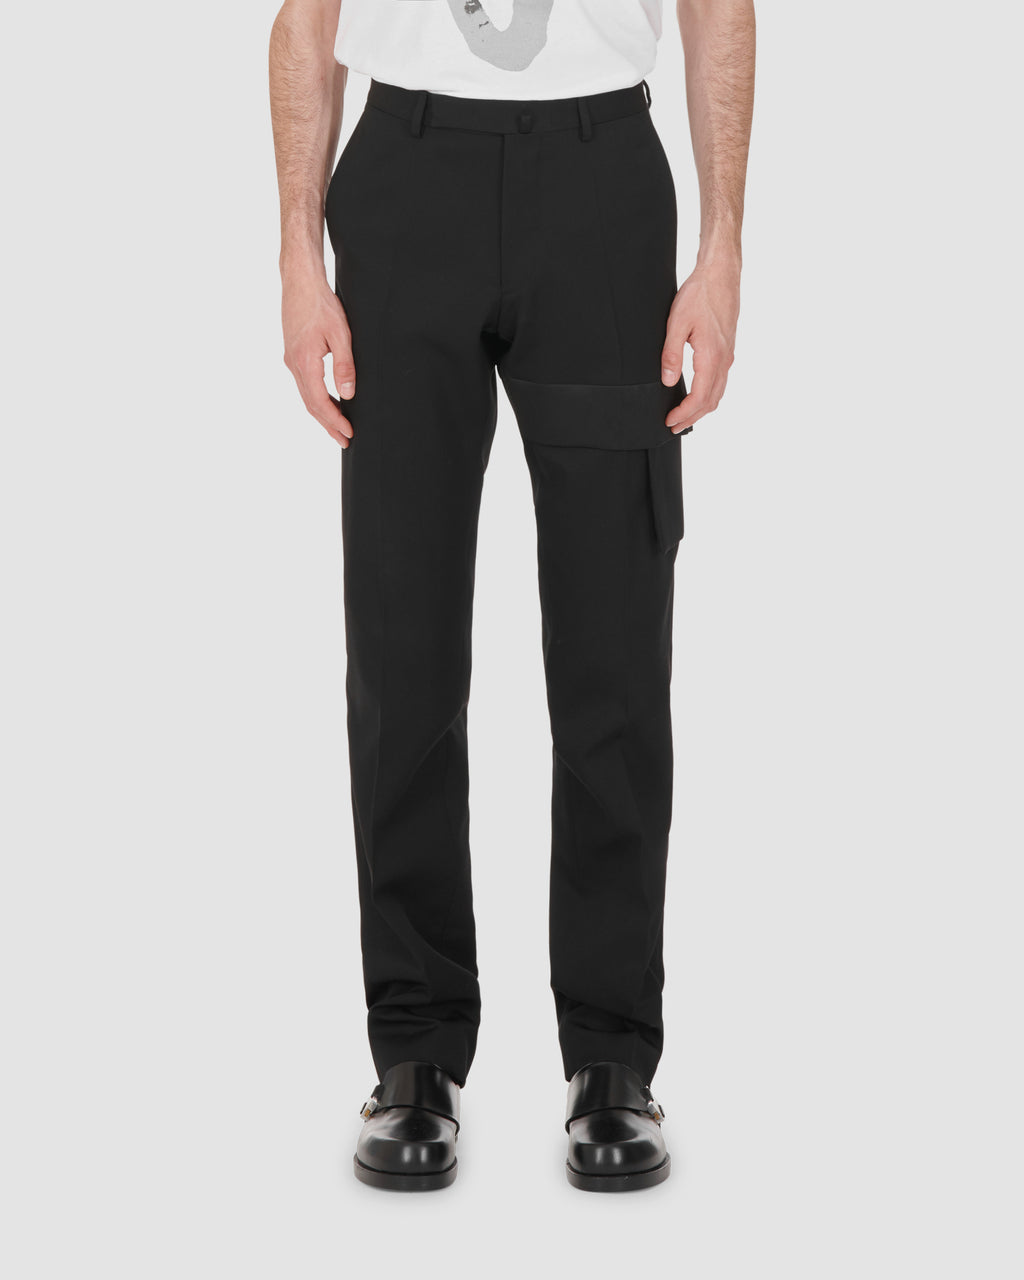 1017 ALYX 9SM | APEX SUIT PANT W POCKET | Pants | BLACK, Google Shopping, Man, MEN, PANTS, S20, S20 Drop II, Trousers